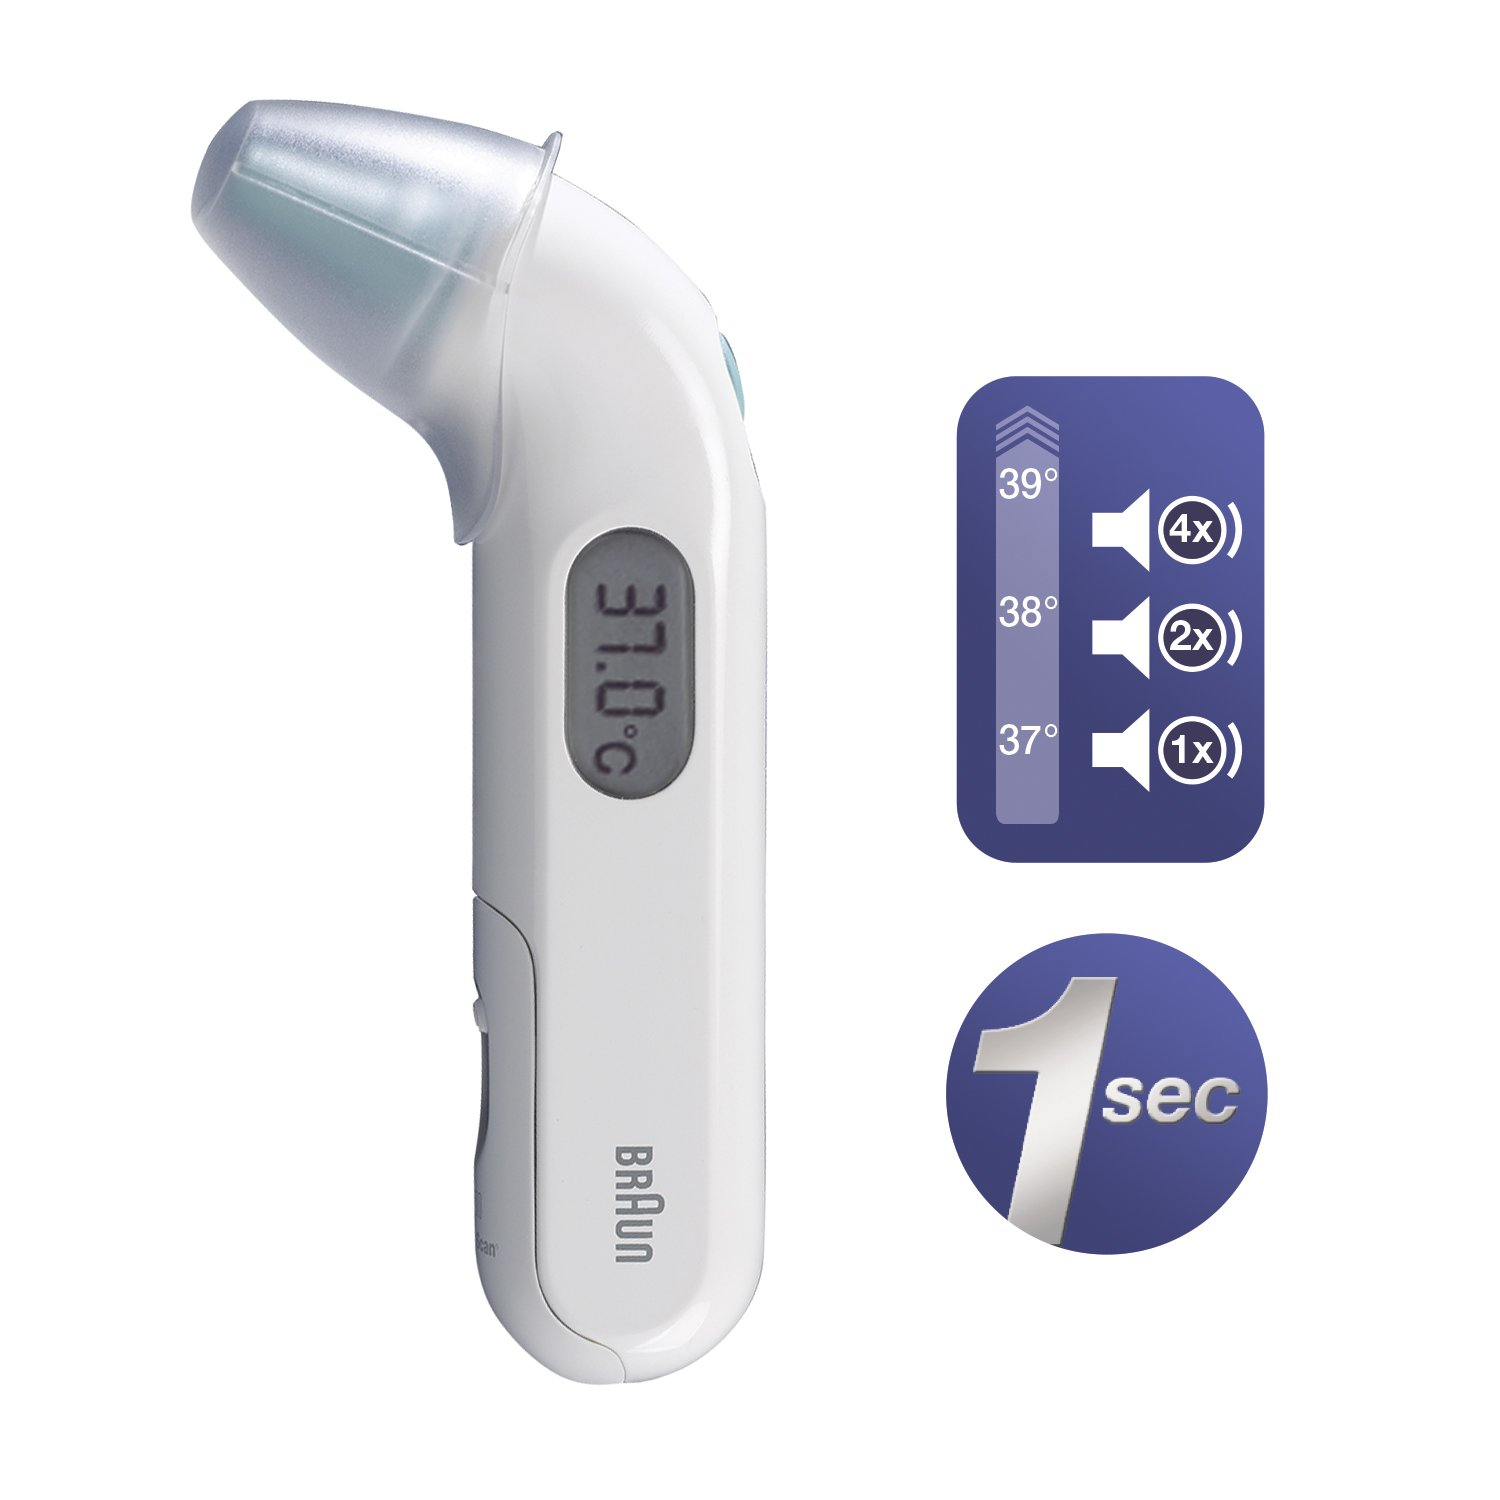 Braun Irt3030 Thermoscan 3 Infrared Ear Thermometer Amazon